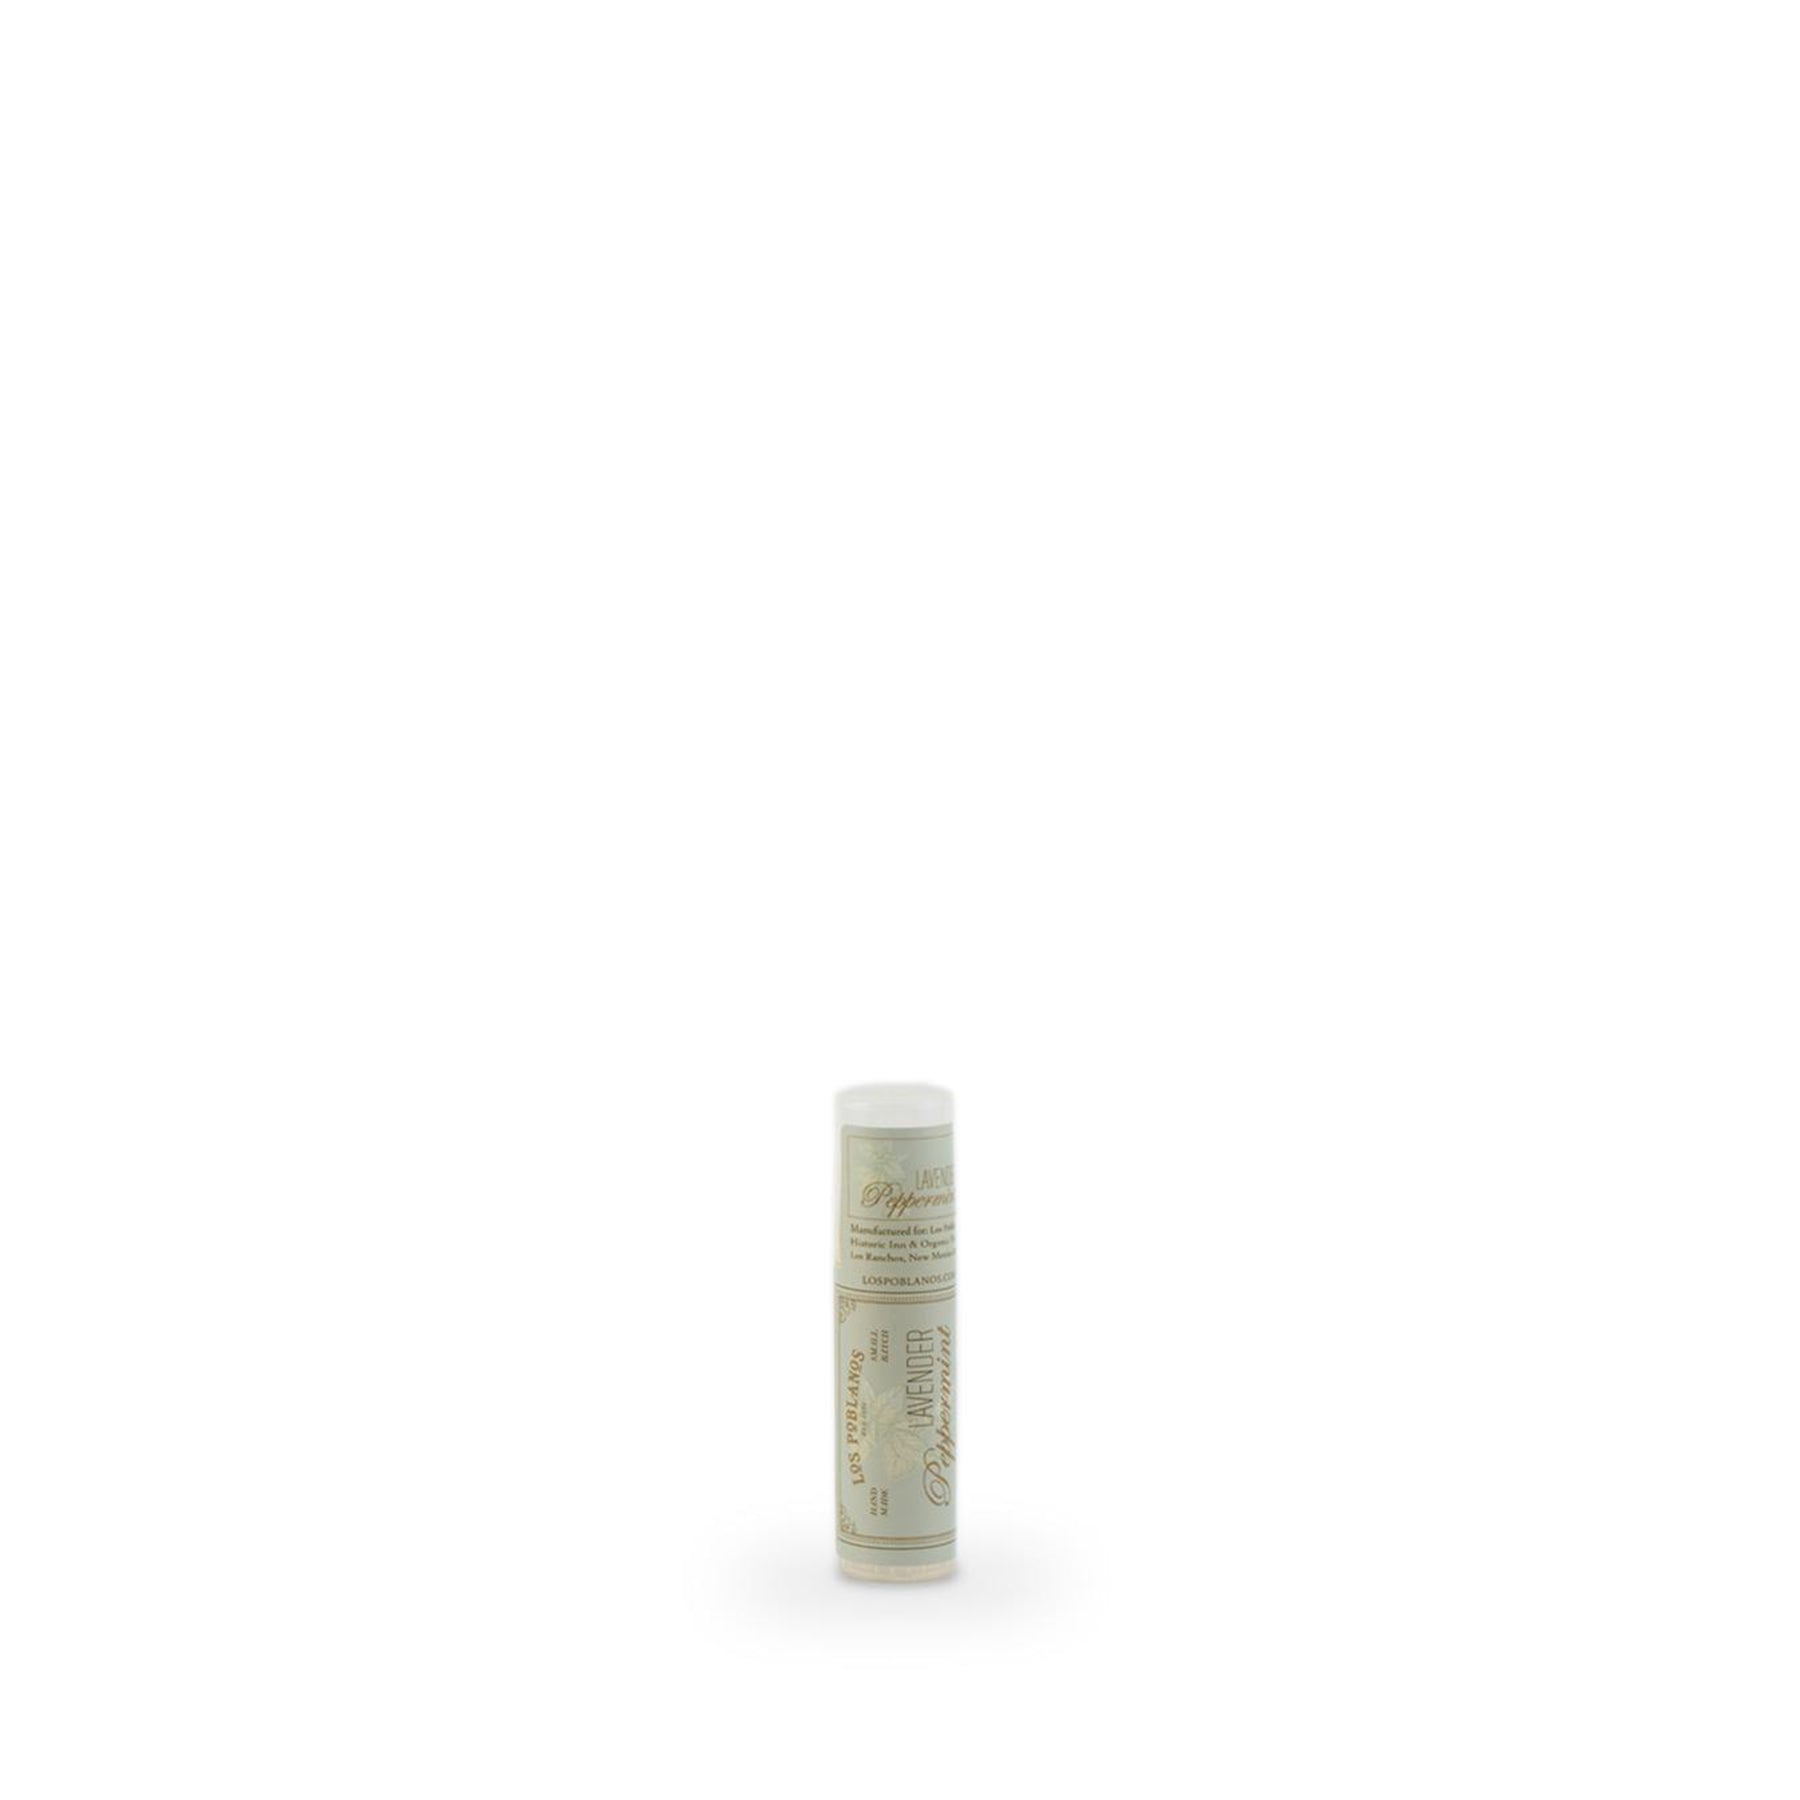 Lavender Peppermint Lip Balm Zoom Image 1